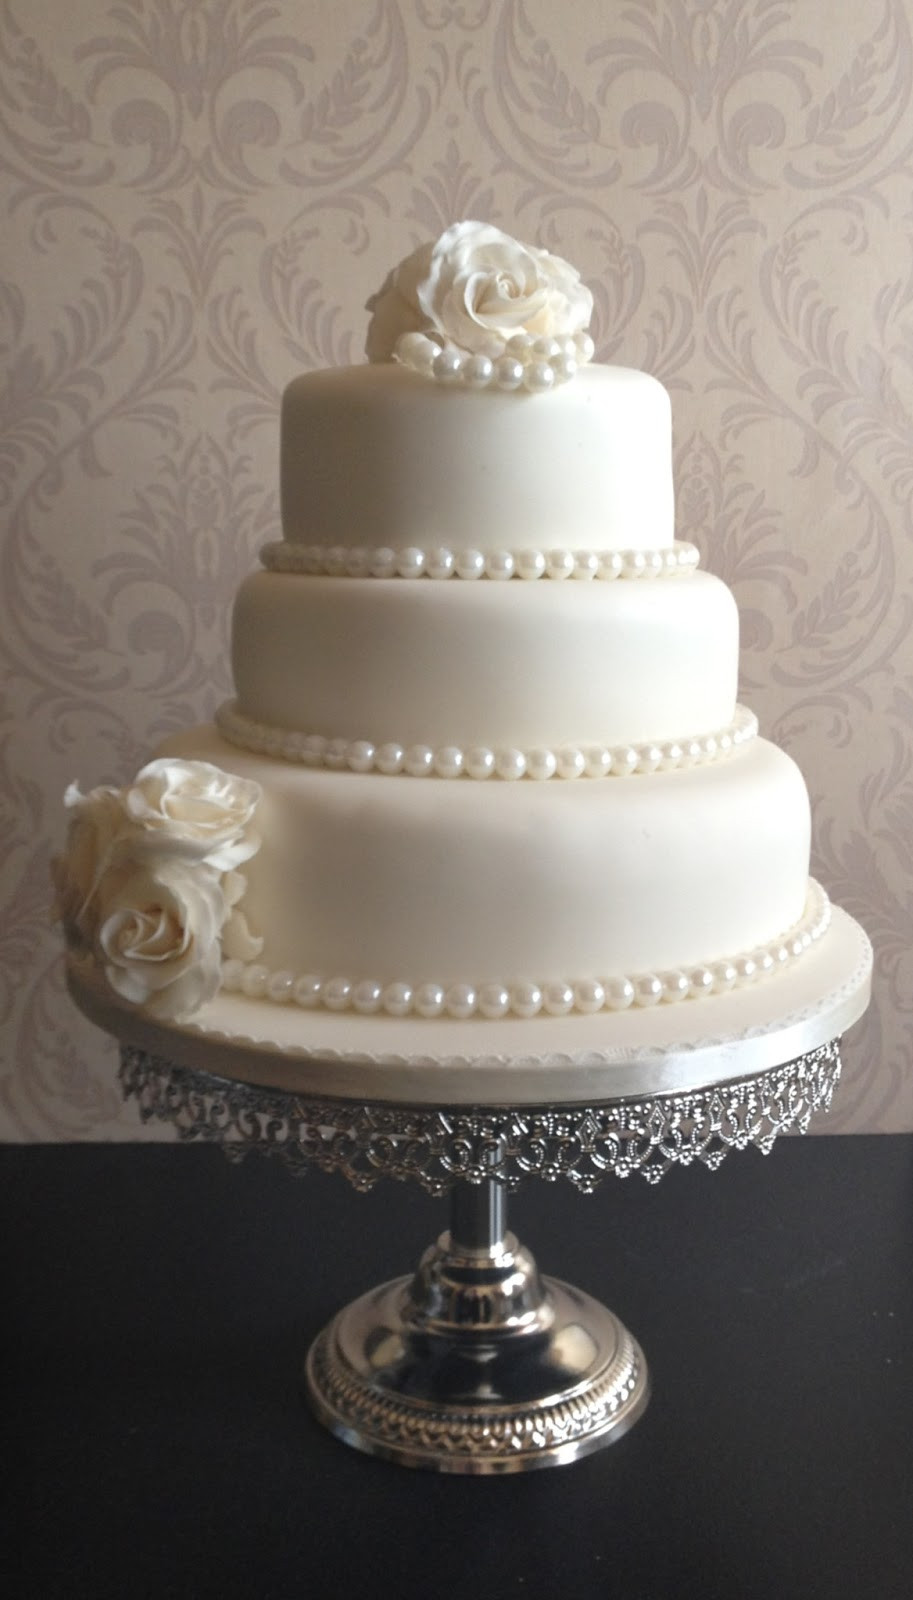 Wedding Cakes Pearls  Carina s Cakes ROSES AND PEARLS WEDDING CAKE